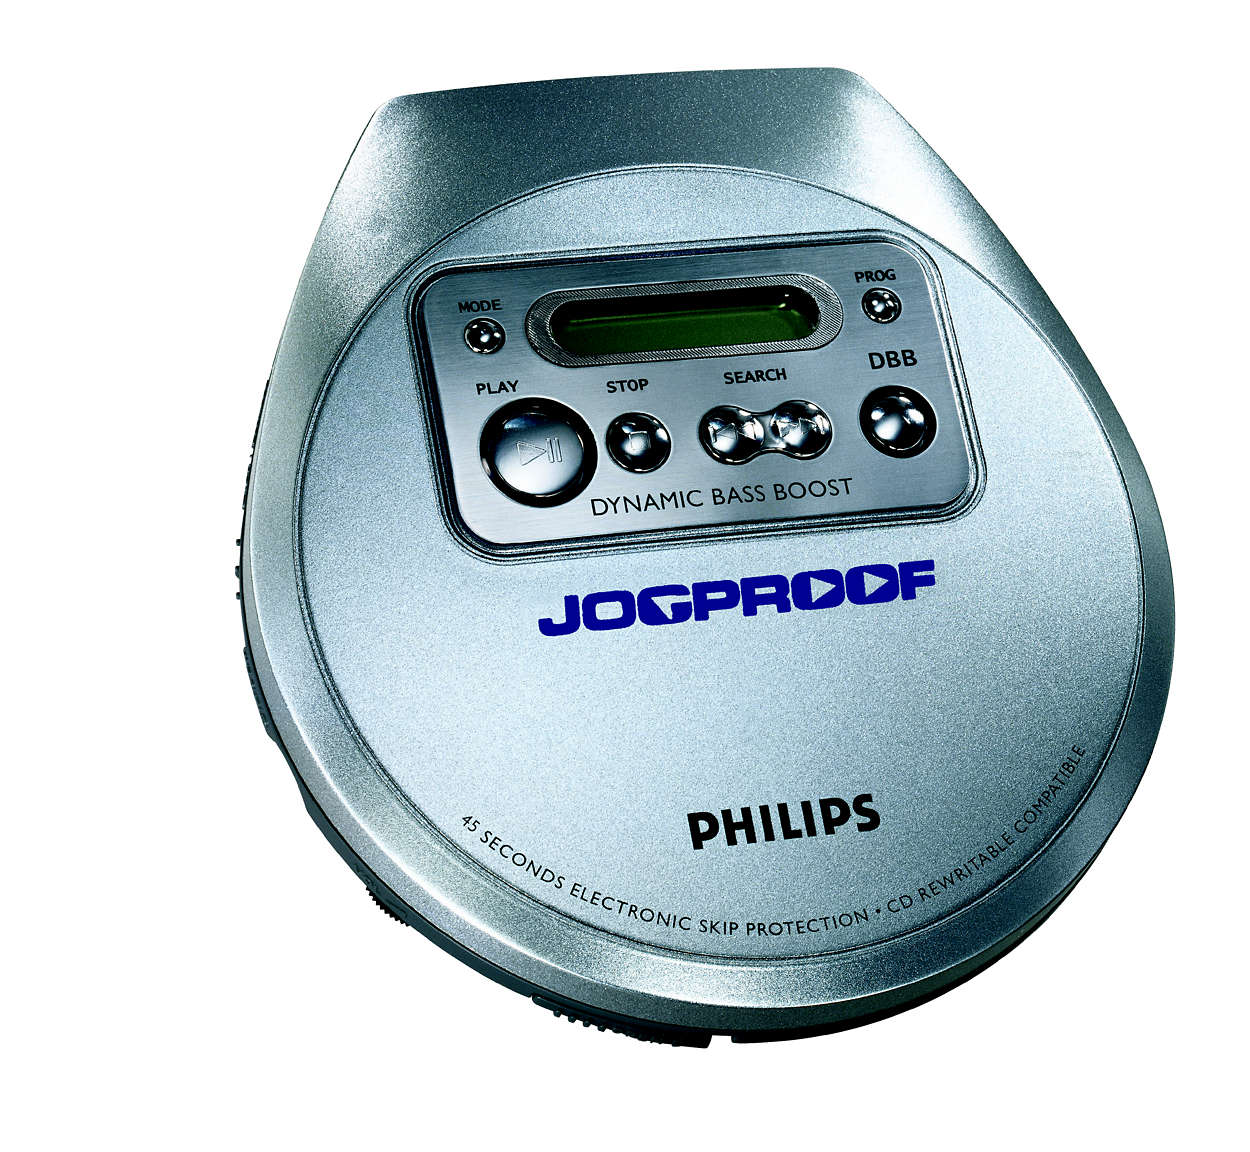 portable cd player ax2301 05z philips. Black Bedroom Furniture Sets. Home Design Ideas